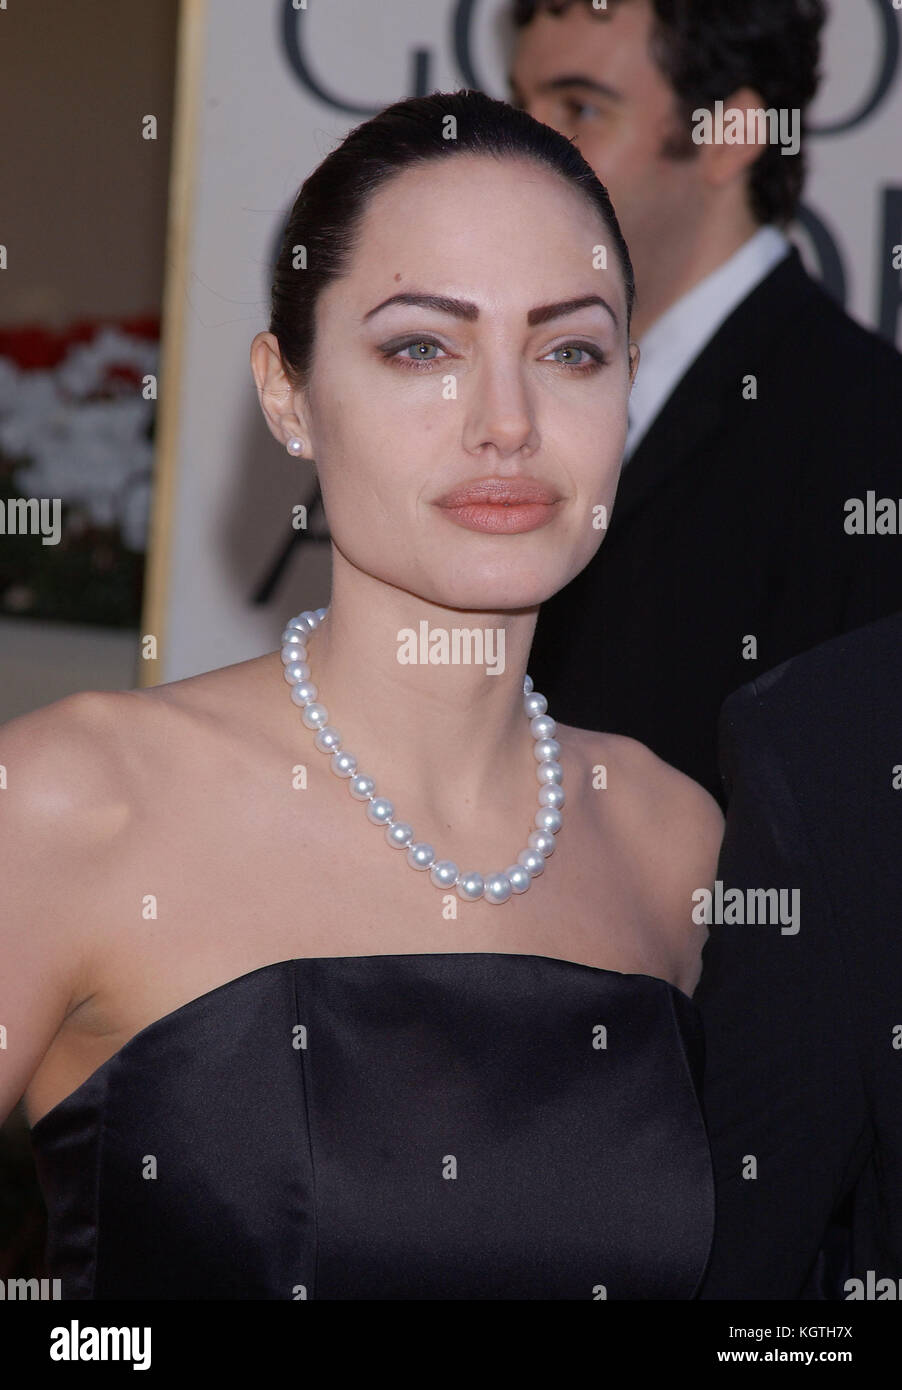 Angelina Jolie arrives at The 59th Annual Golden Globe Awards held at the Beverly Hilton Hotel in Los Angeles, Ca., - Stock Image